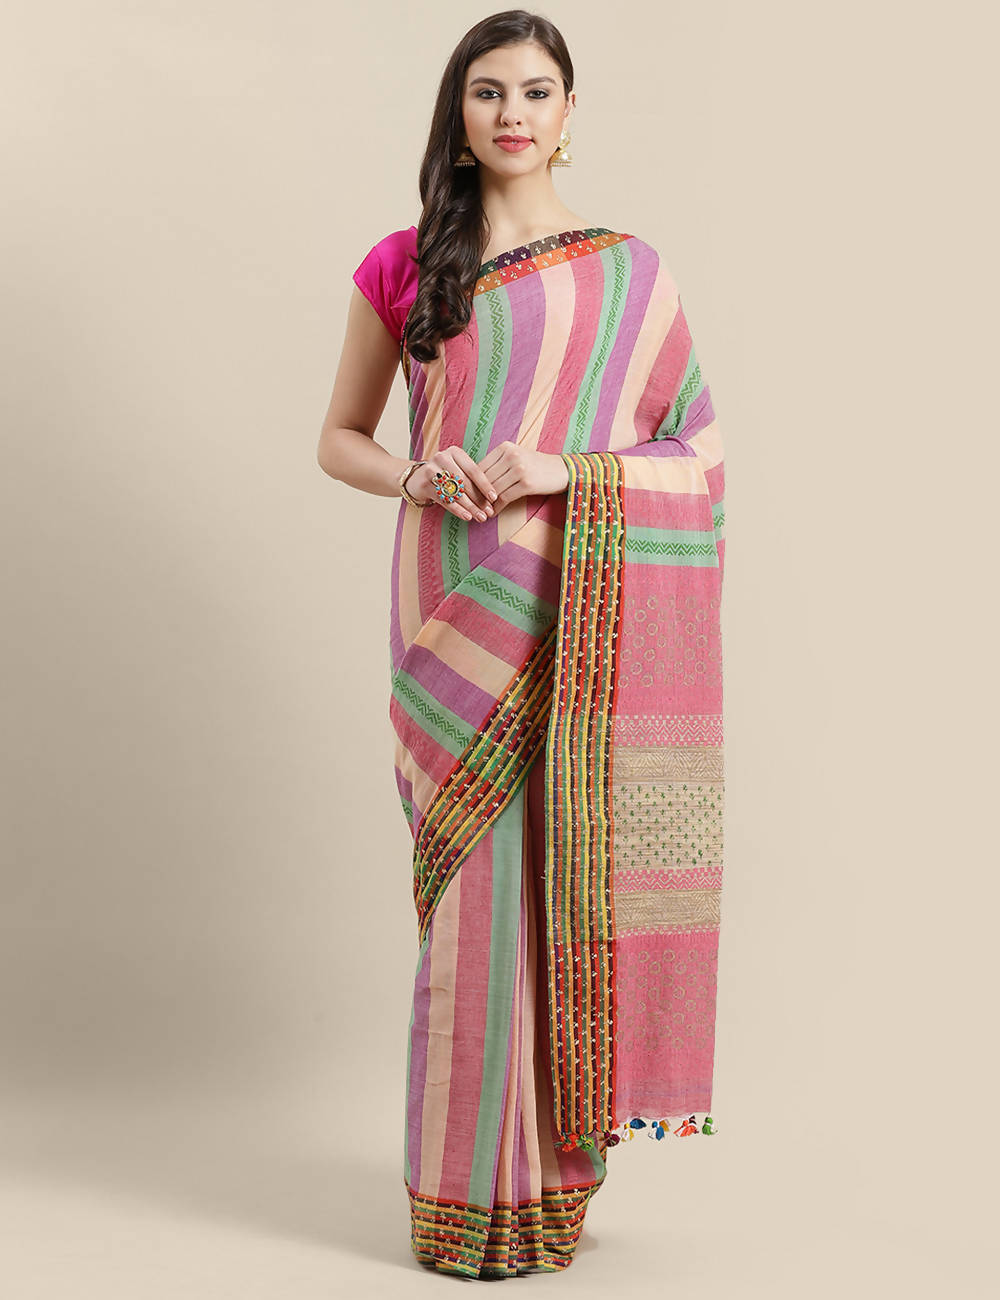 Multicolour handwoven striped cotton saree